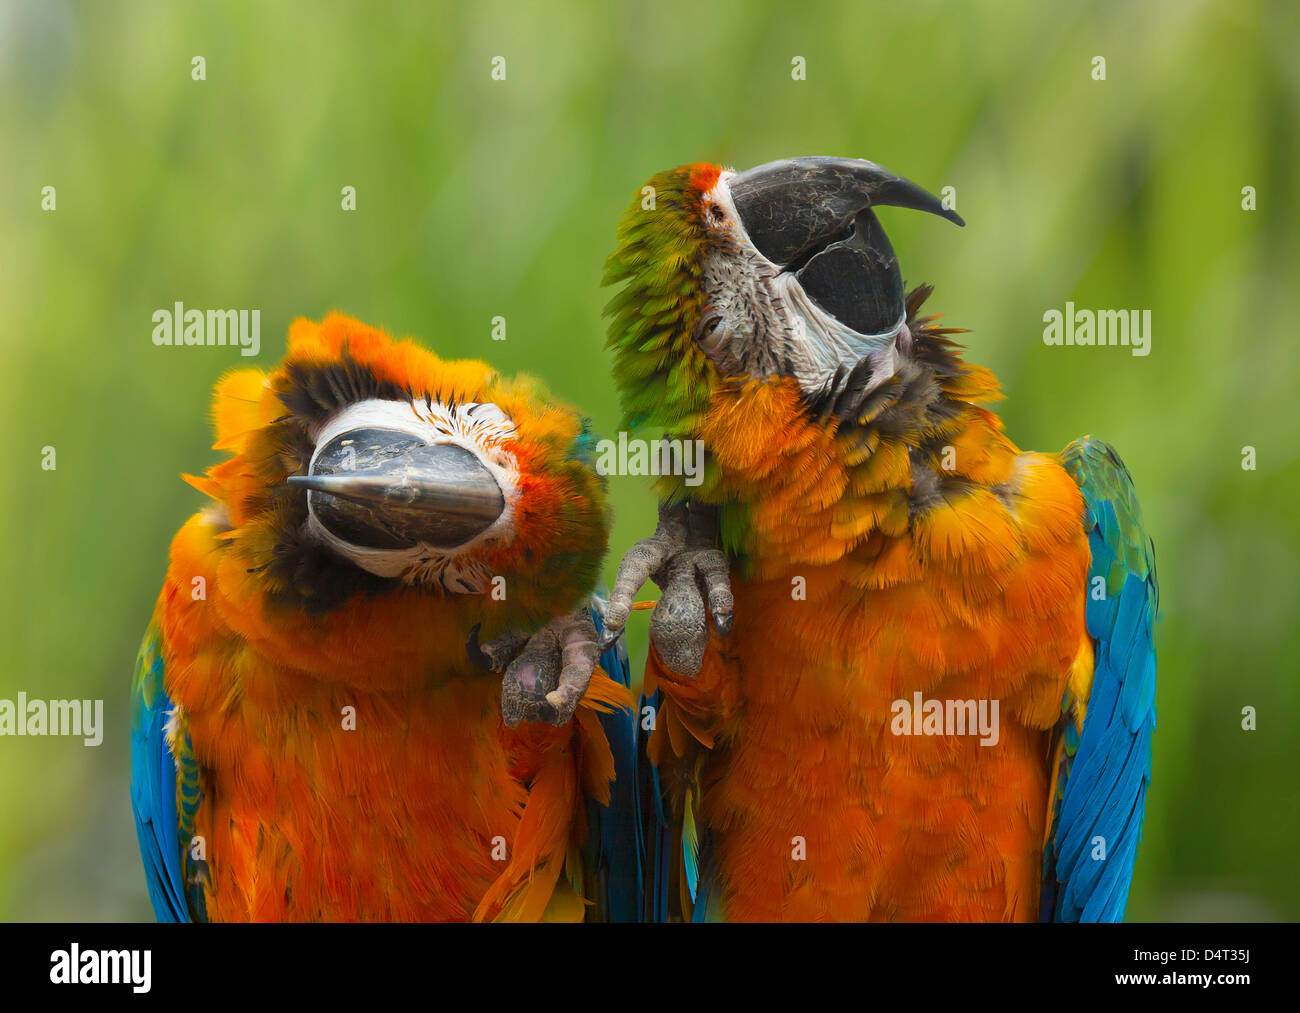 Two Macaws sitting together - Stock Image